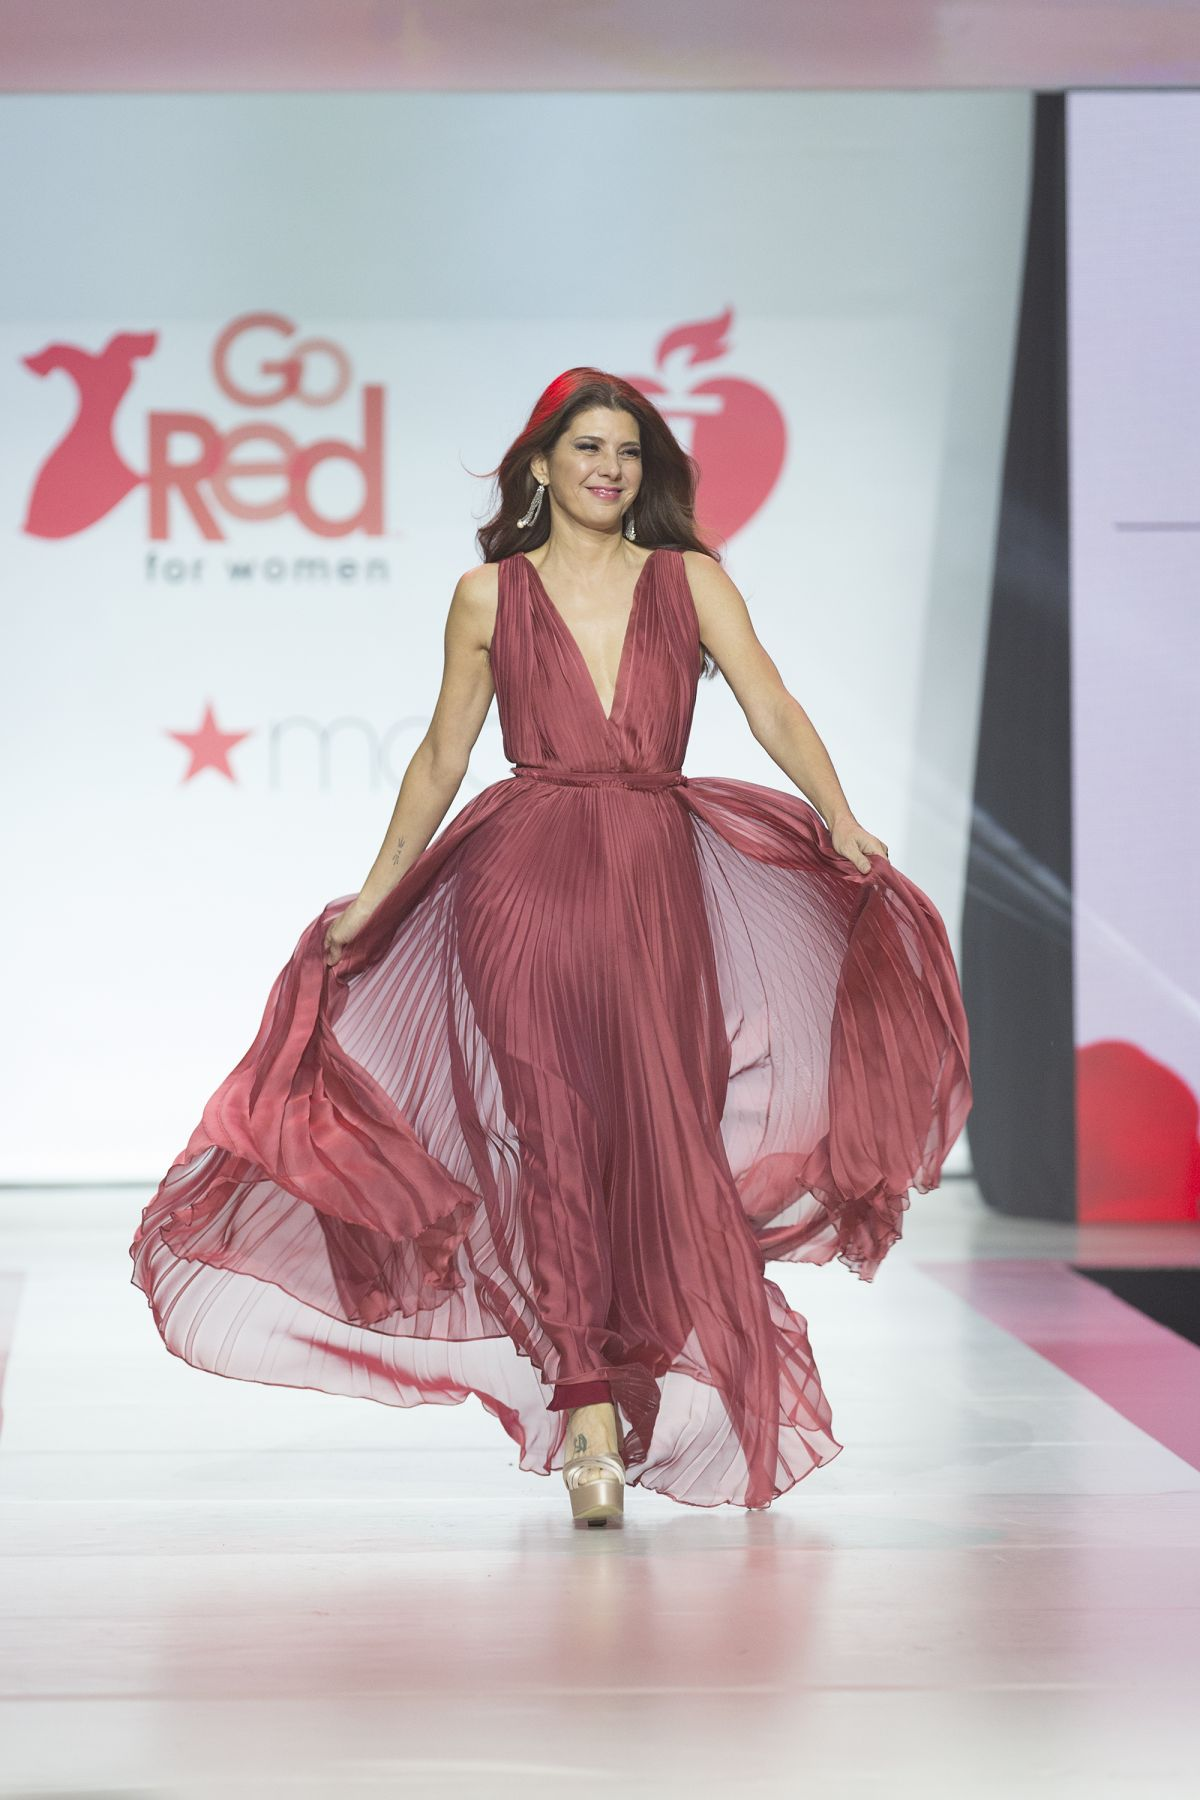 MARISA TOMEI in Gown by Galia Lahav at Red Dress 2018 ...